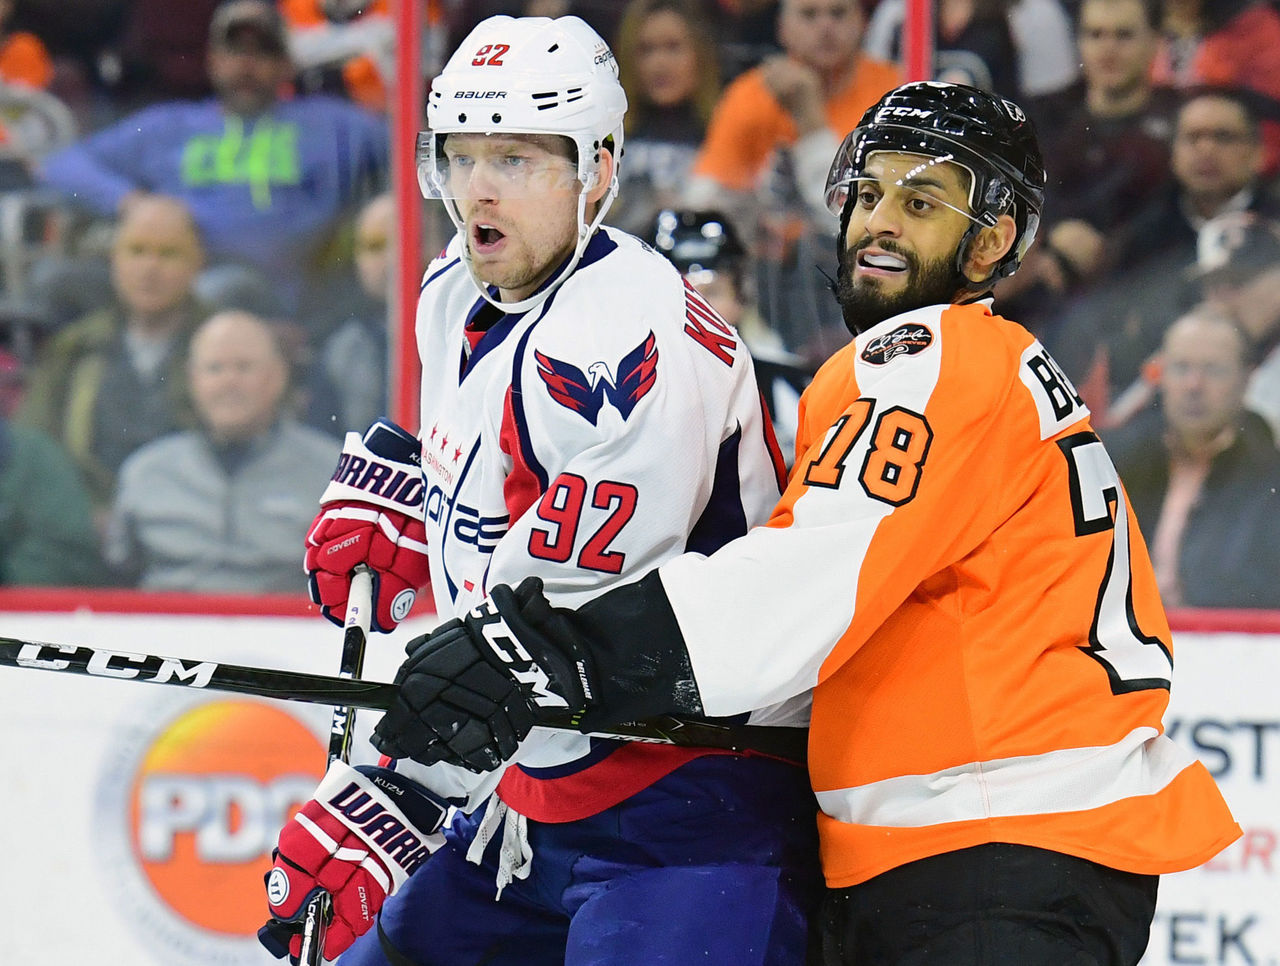 Cropped 2017 02 23t021729z 381994572 nocid rtrmadp 3 nhl washington capitals at philadelphia flyers